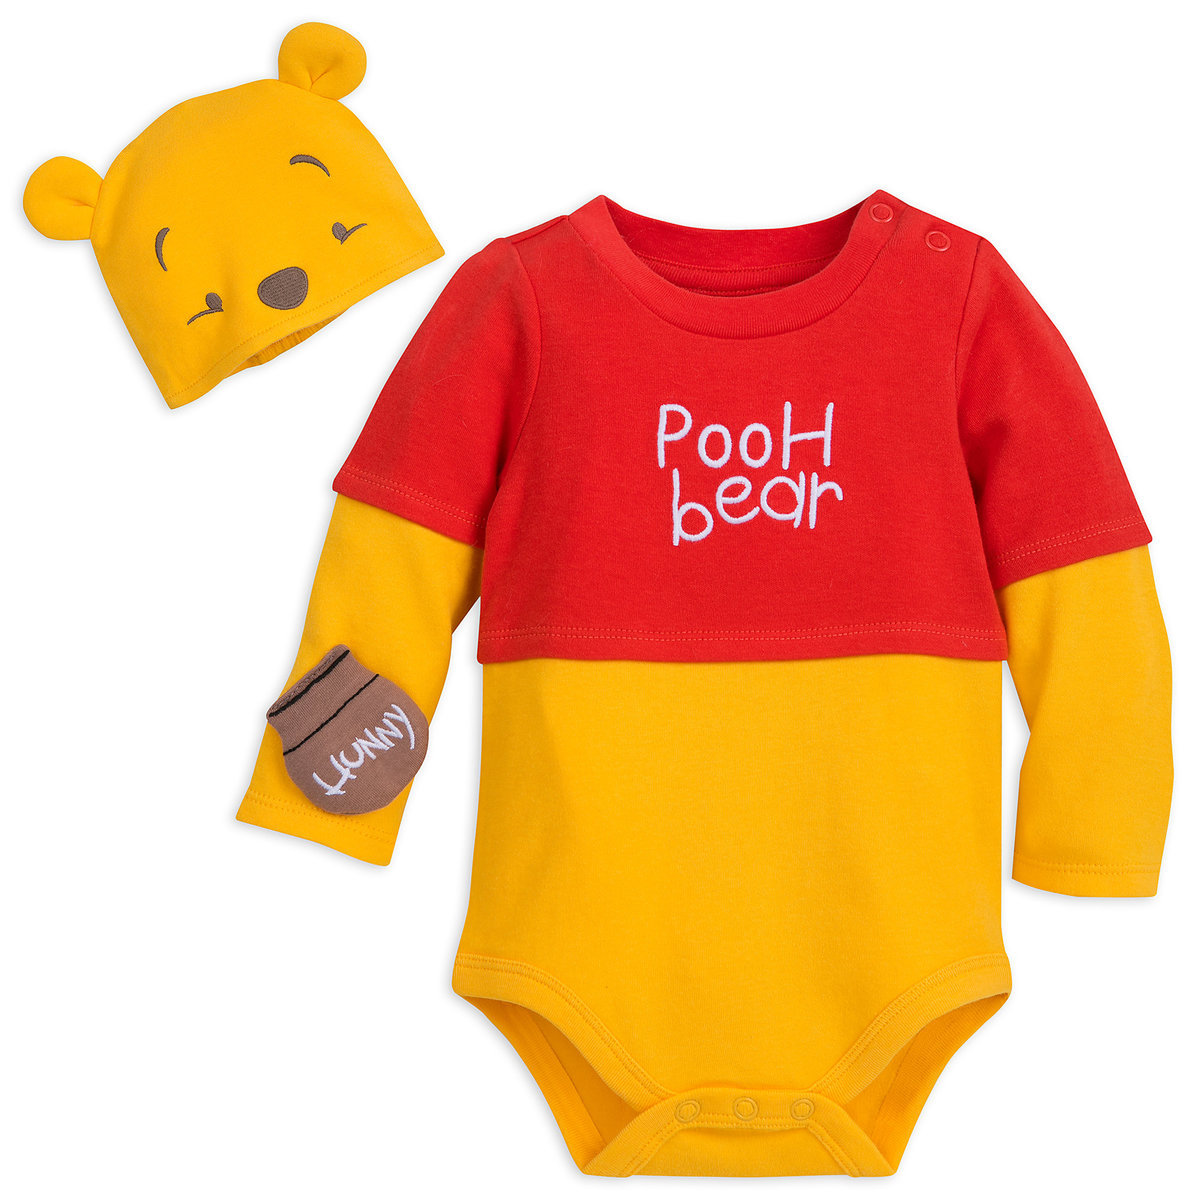 c768e8221 Product Image of Winnie the Pooh Costume Bodysuit Set for Baby # 1